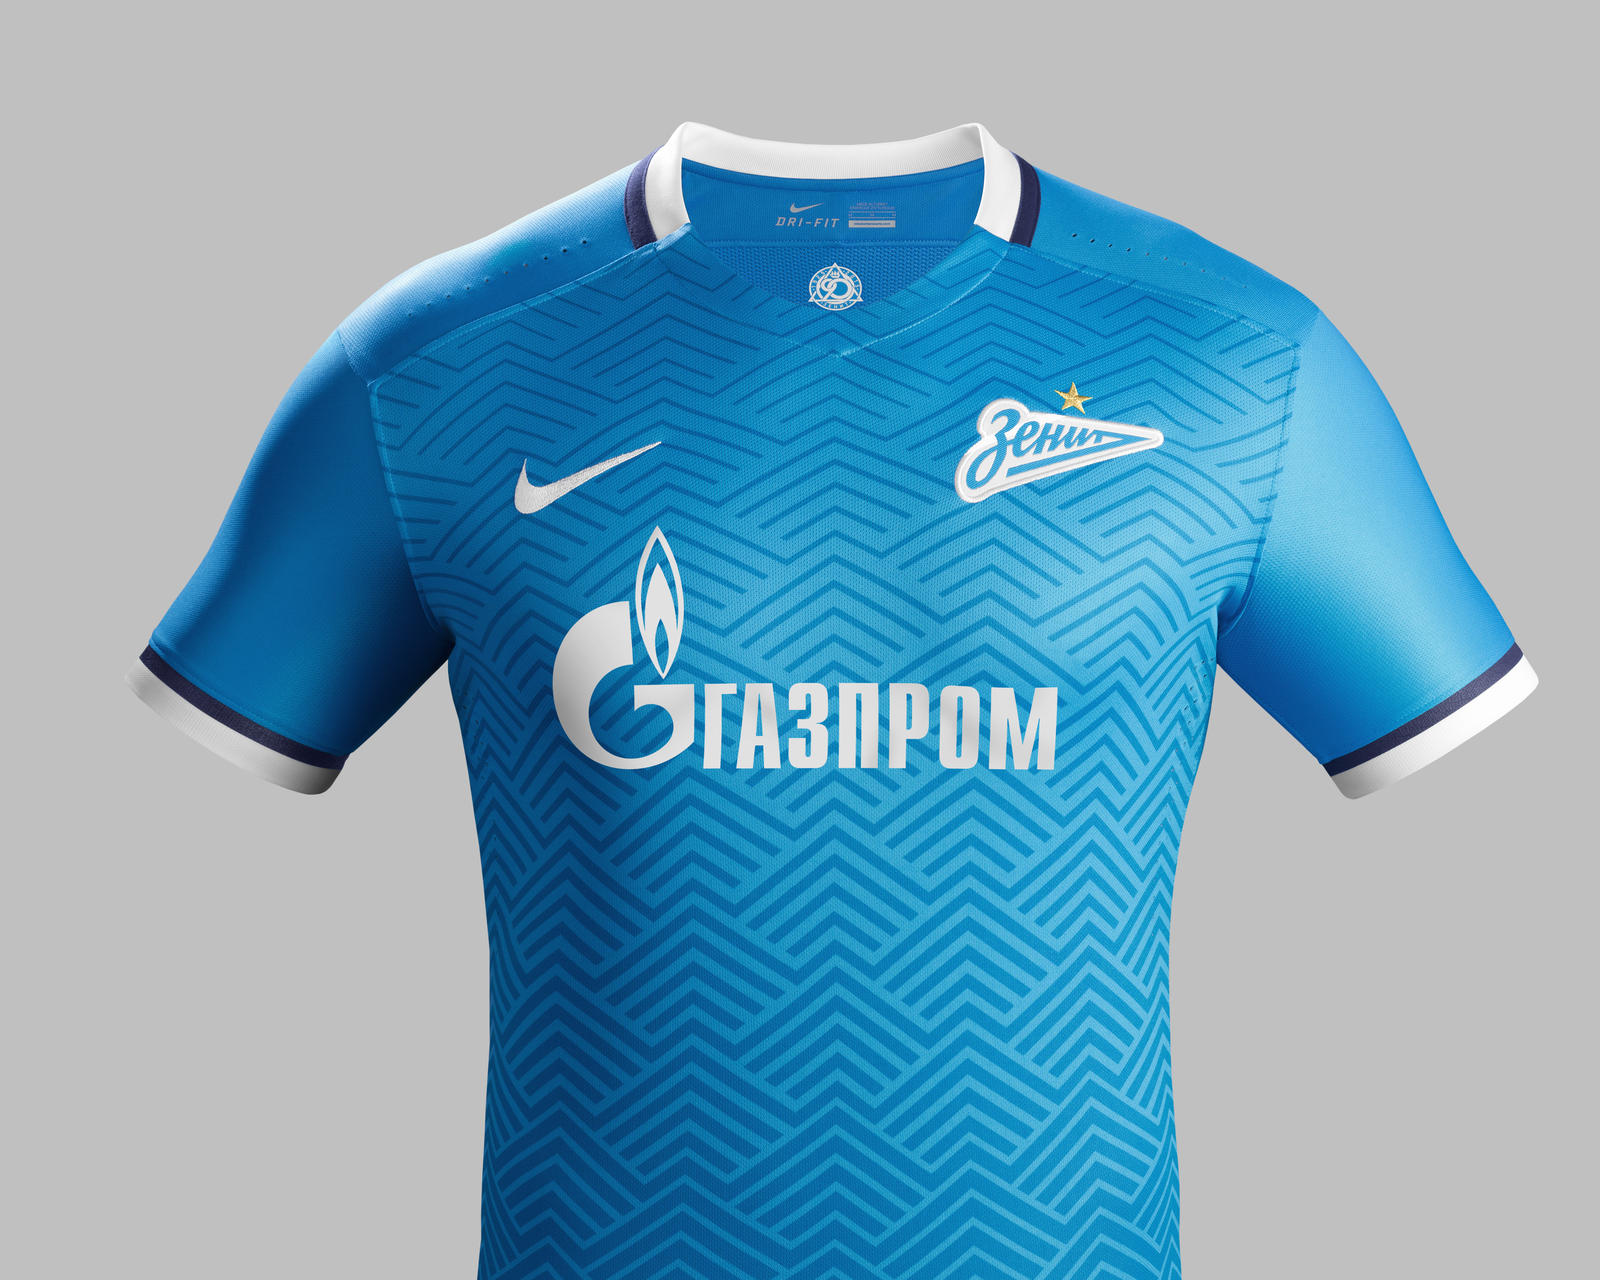 Nike Zenit Home Kit Front